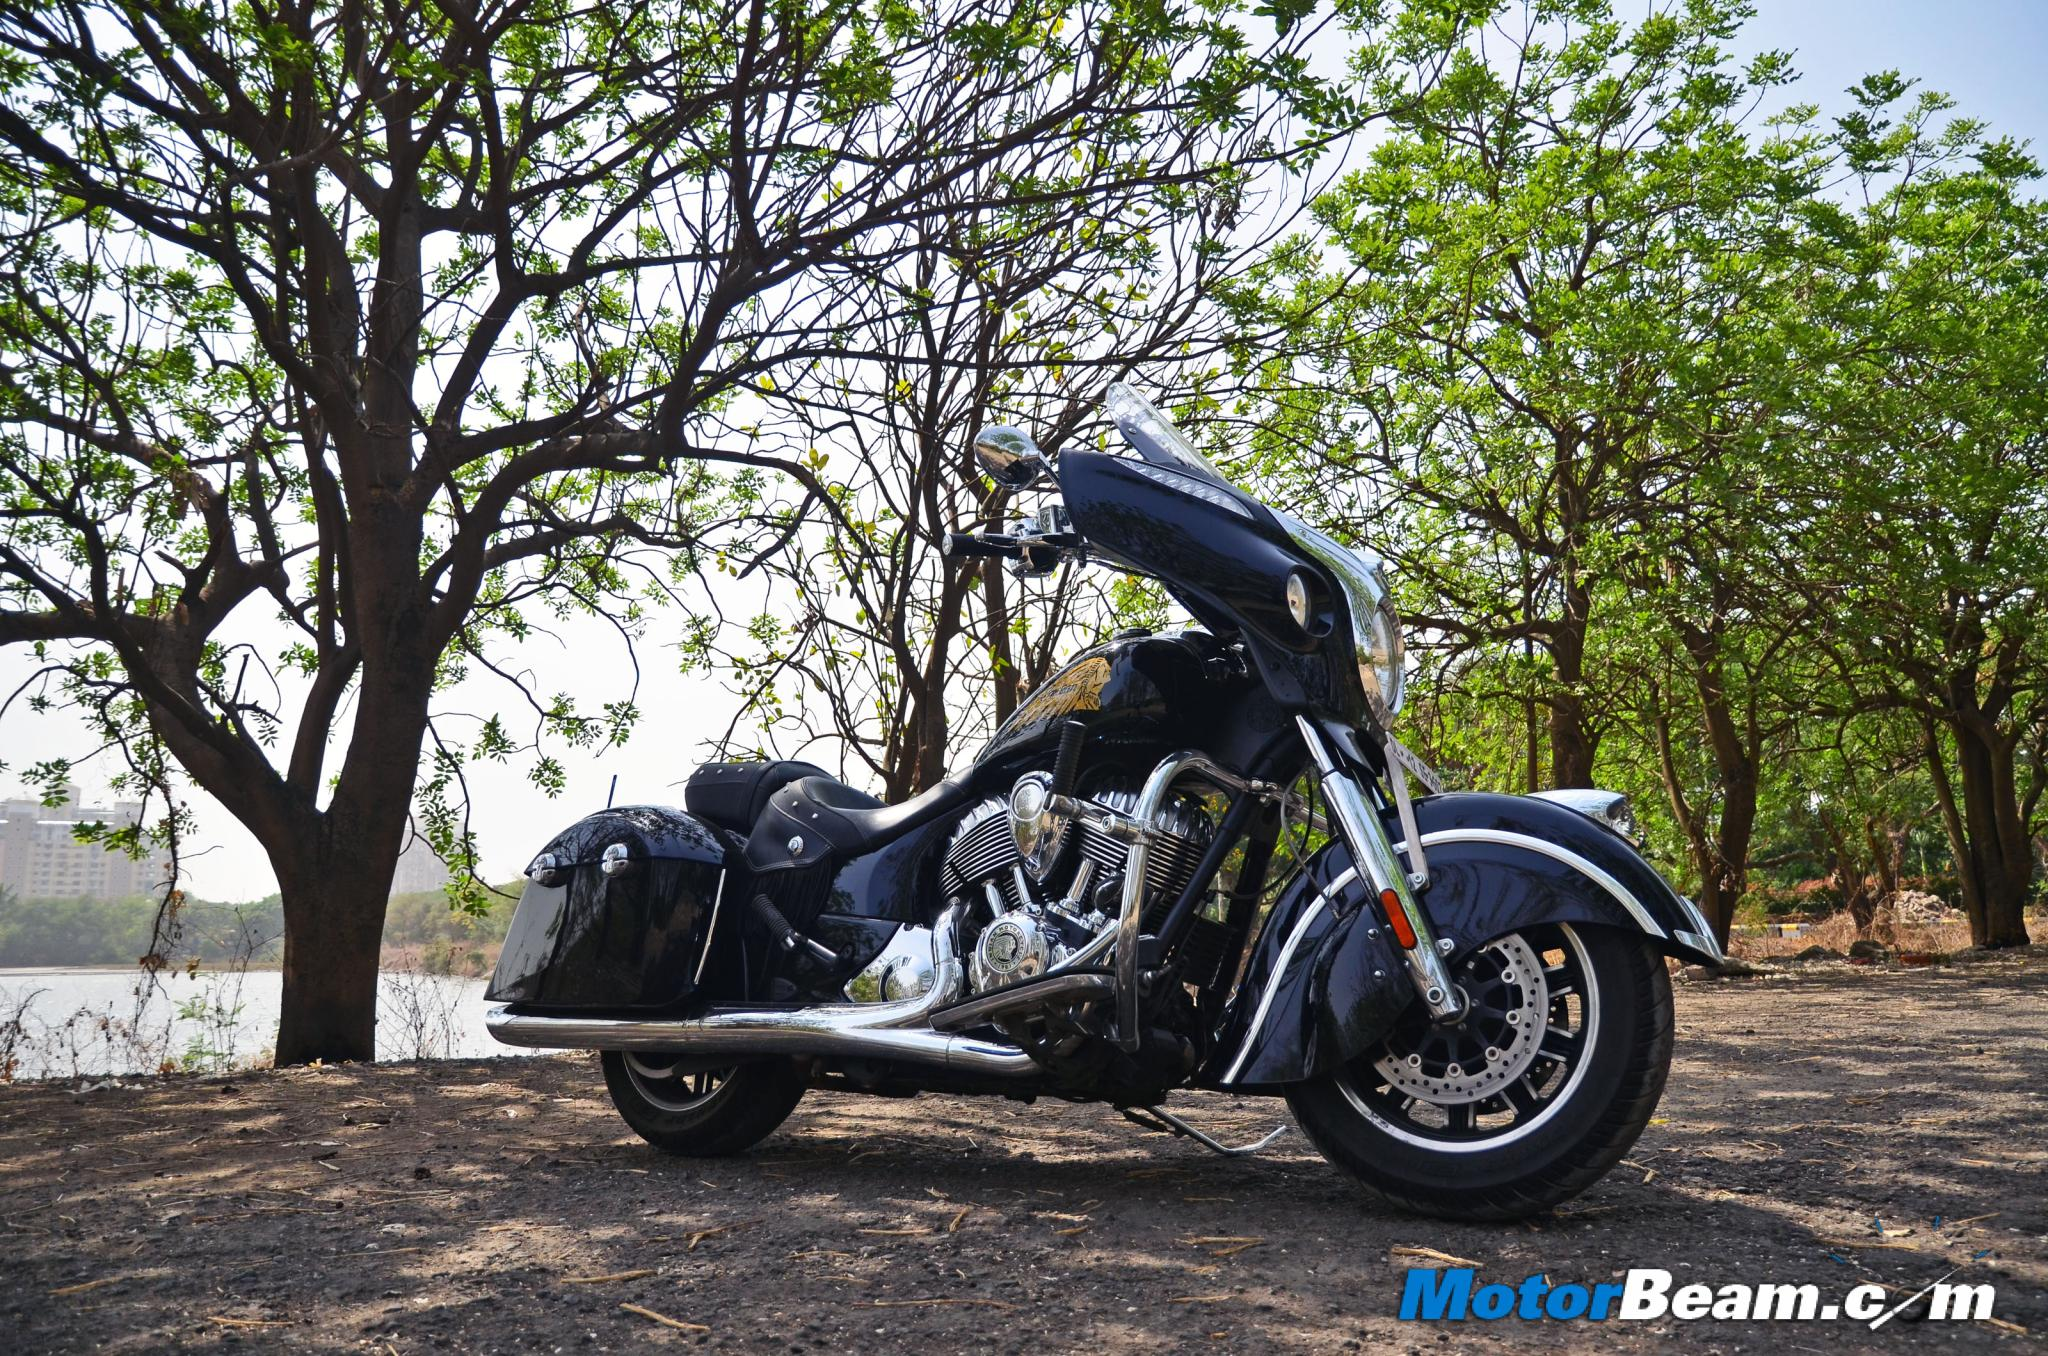 2015 Indian Chieftain Test Ride Review